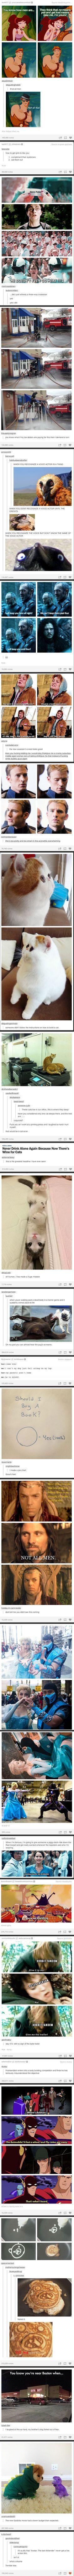 the best of tumblr - Funny Pictures - Funny Photos - Funny Images - Funny Pics